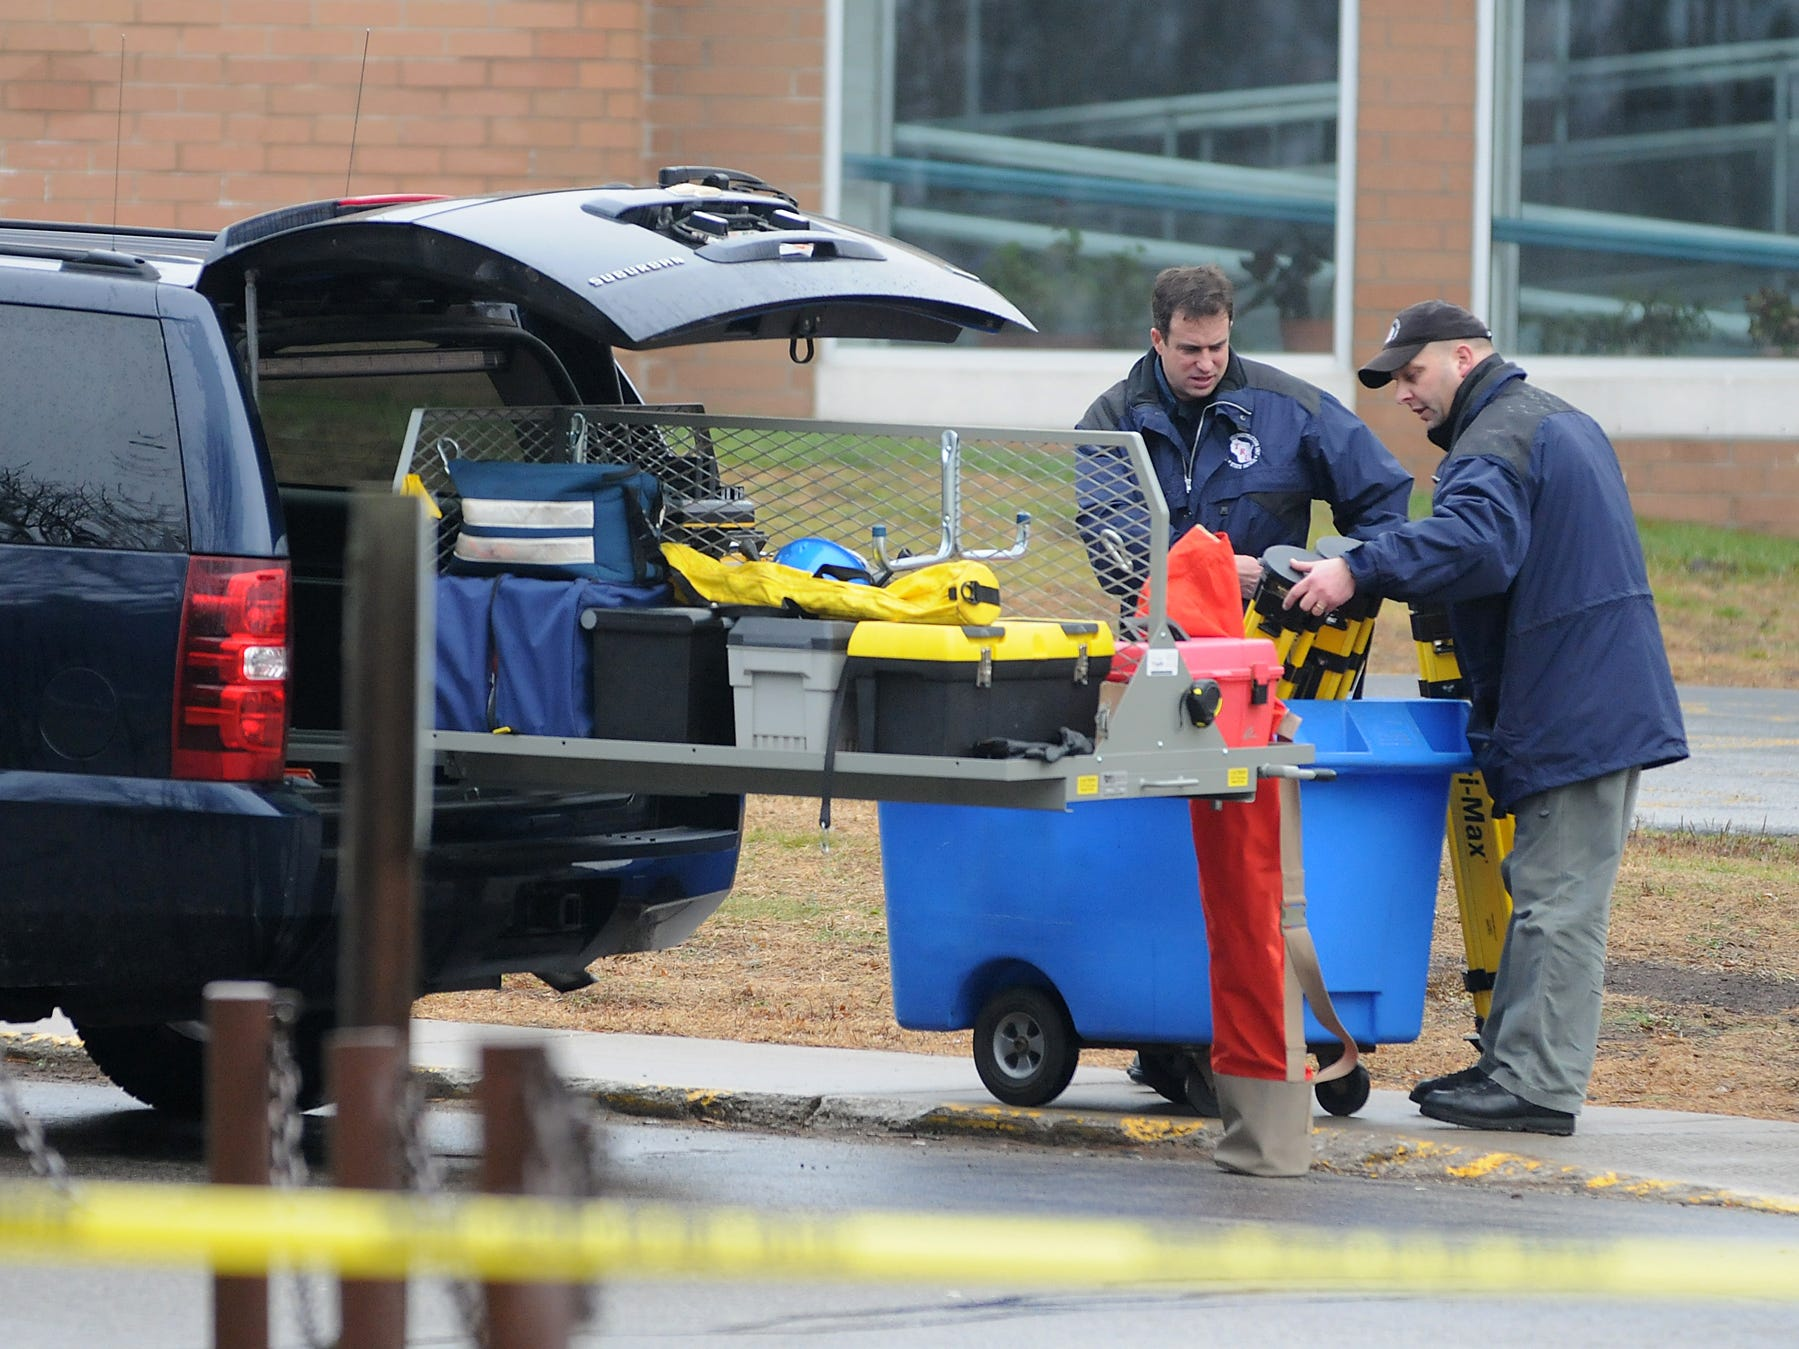 Investigators load a cart of equipment back into a vehicle after the gear was used during the investigation at Marinette High School on Nov. 30, 2010 following a hostage incident on Nov. 29 where a 15-year-old male held a classroom of students and a teacher in a classroomin Marinette, Wis., until police heard gunshots from the classroom, entered and the suspect shot himself with a handgun.  The incident occured in a classroom in the lower level of the school. Photo by Corey Wilson/Press-Gazette